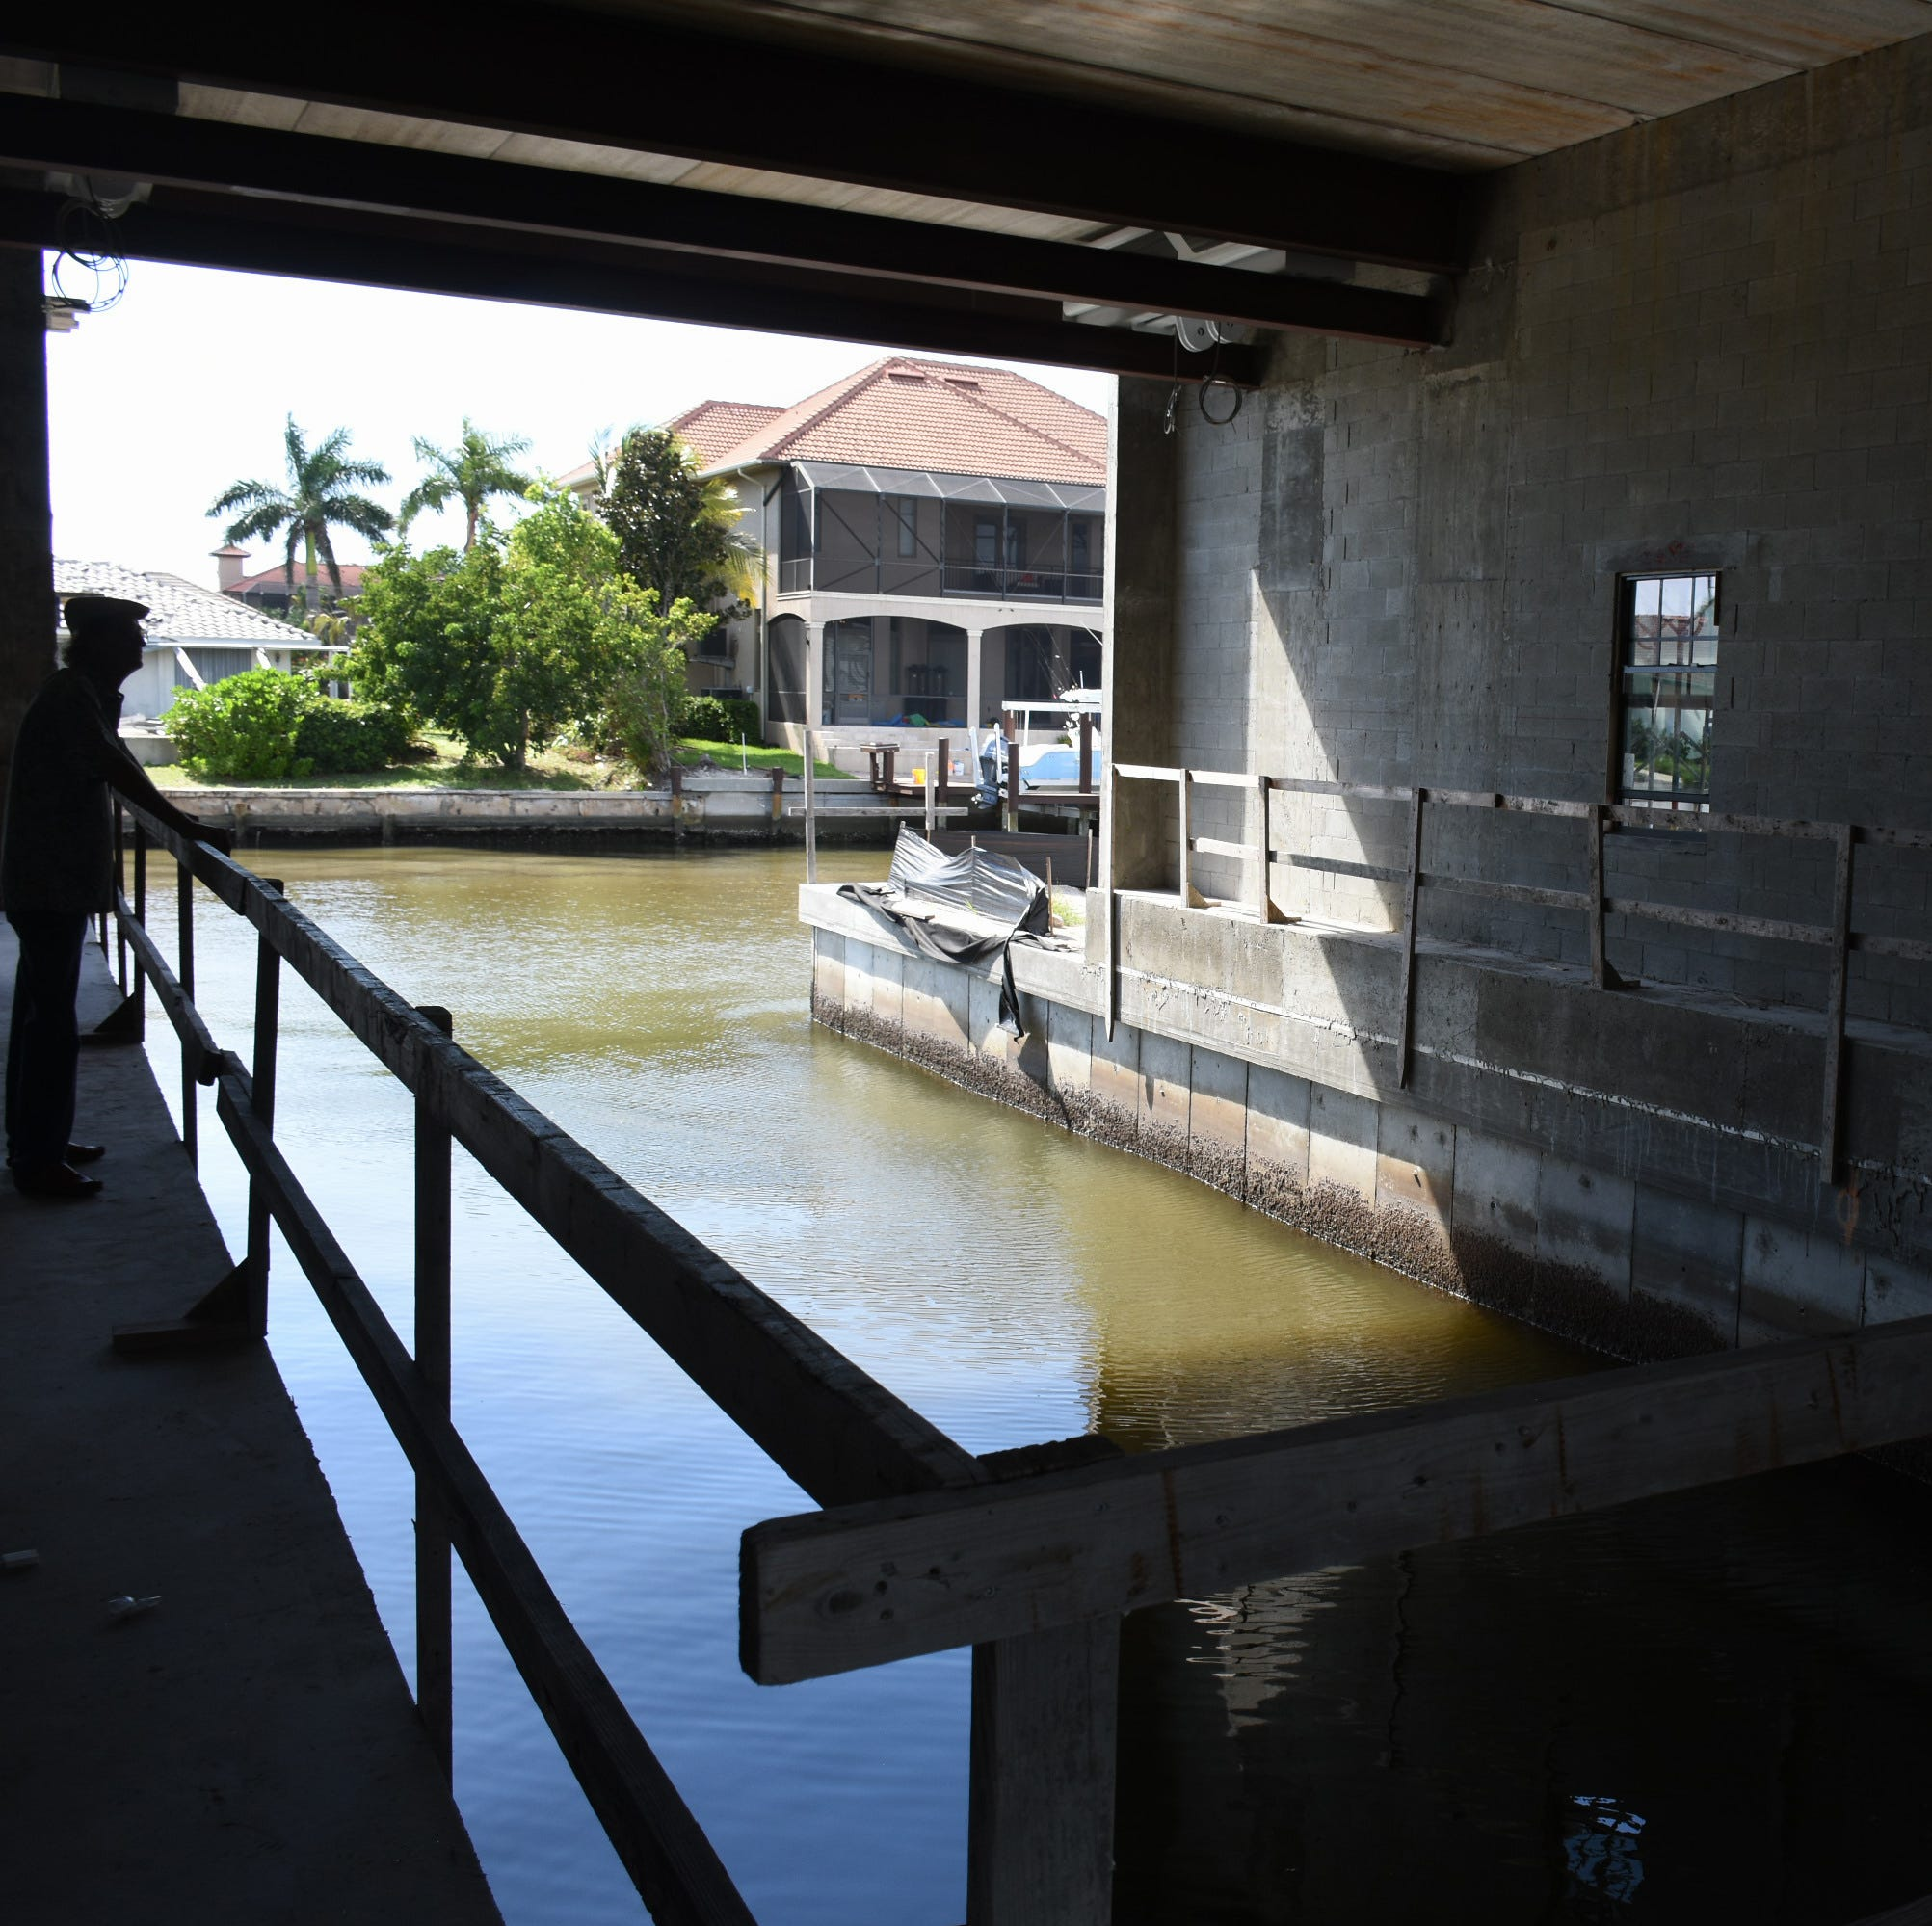 The boat's in the basement: Cut-in 'yacht garage' takes shape under waterfront Marco home